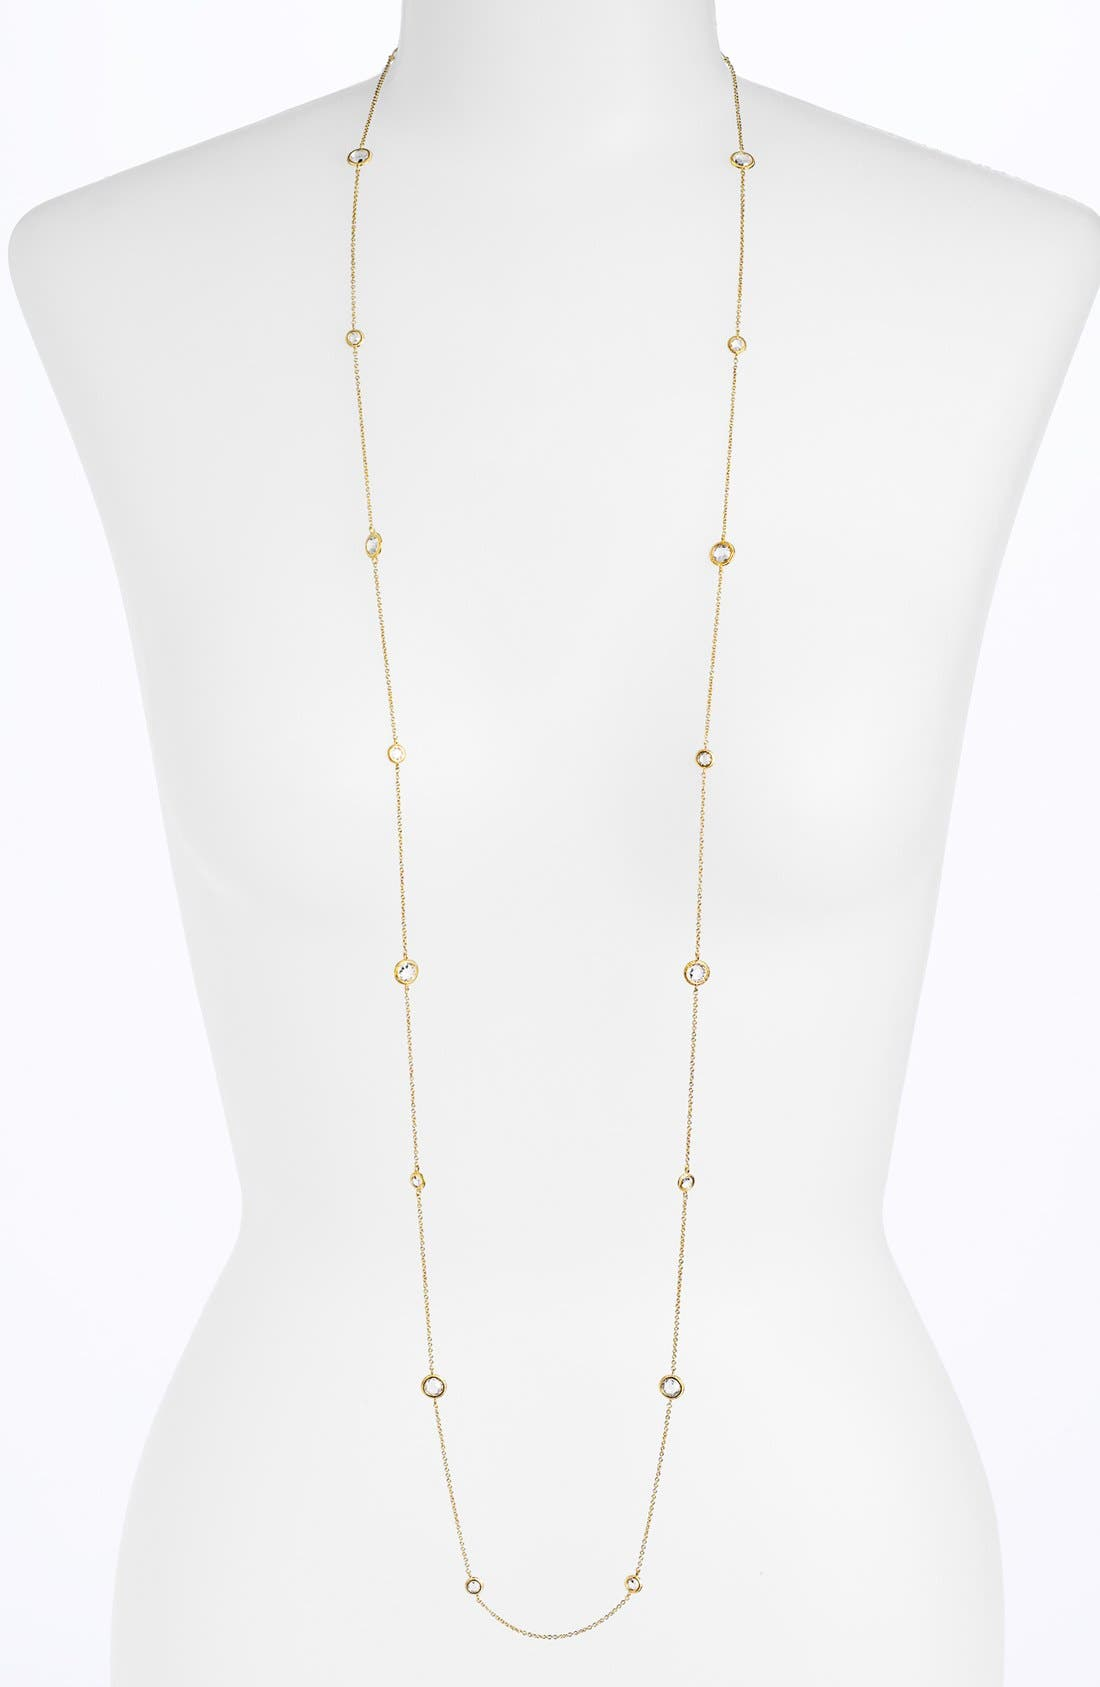 Main Image - Nadri Long Bezel Station Necklace (Nordstrom Exclusive)